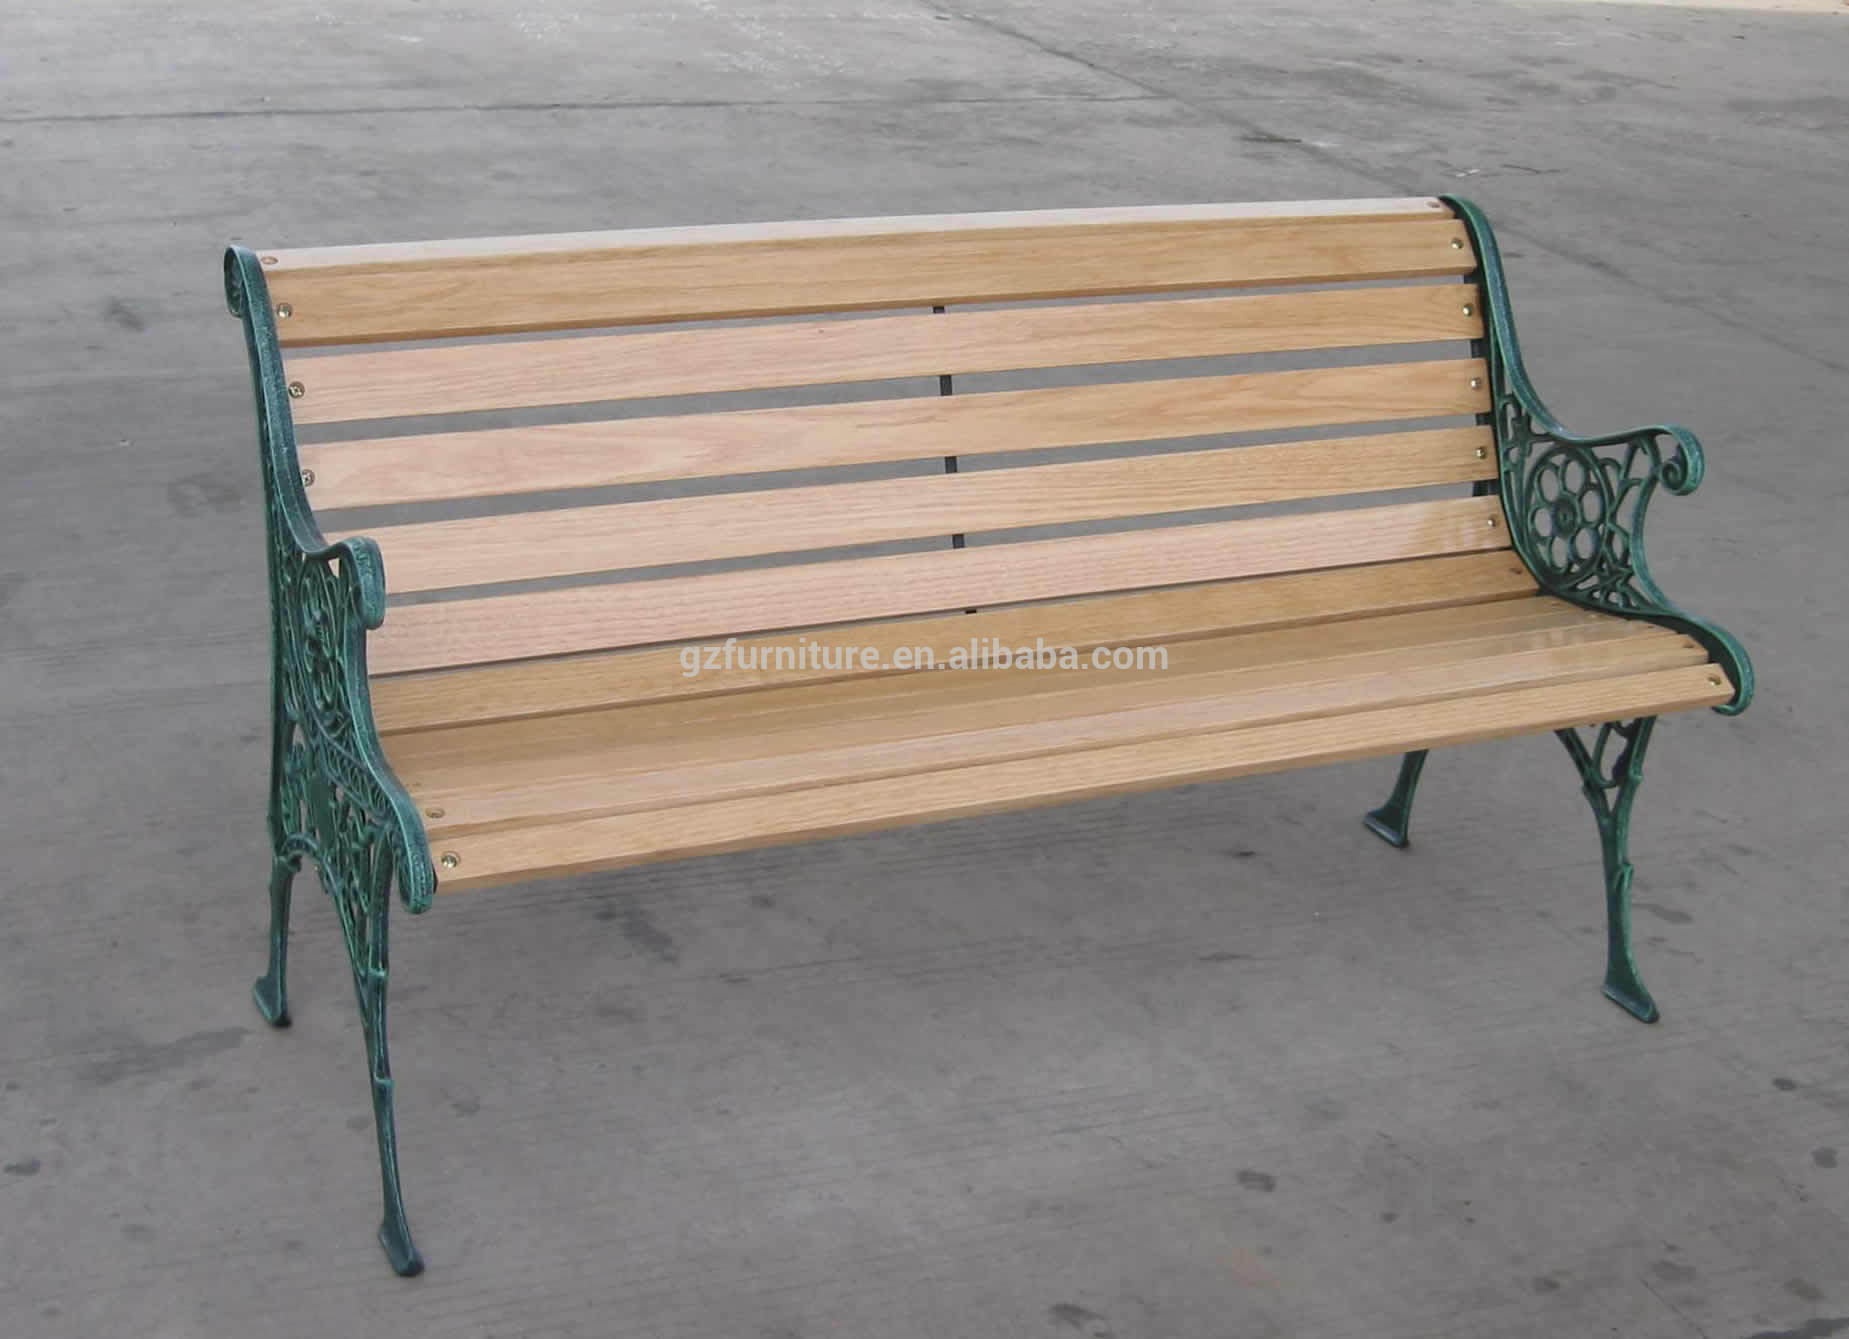 Iron And Wood Patio Furniture wood slats for cast iron bench, wood slats for cast iron bench